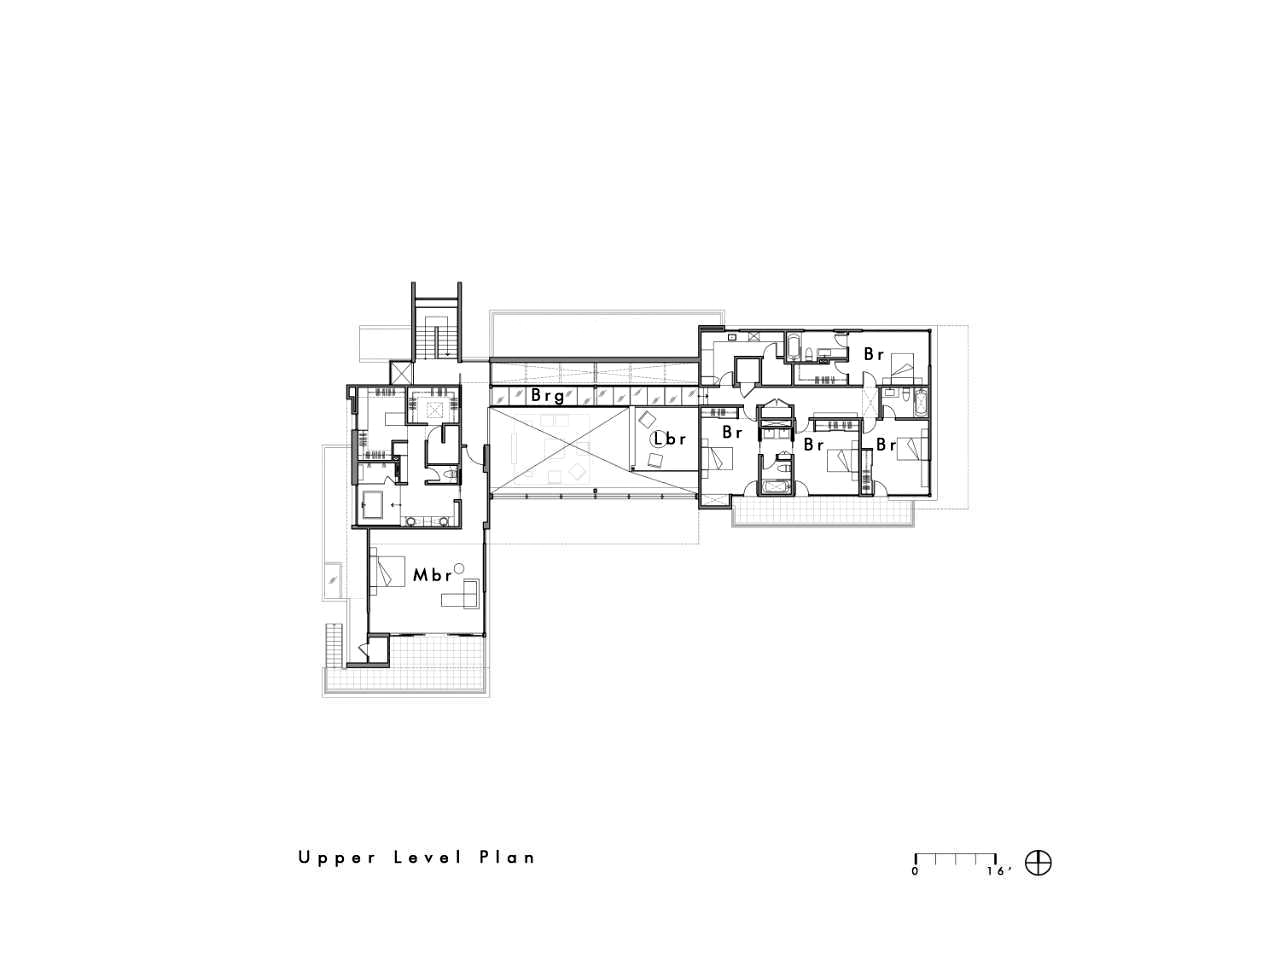 Upper Level Floor Plan - Modern Luxury OZ Residence - 92 Sutherland Drive, Atherton, CA, USA